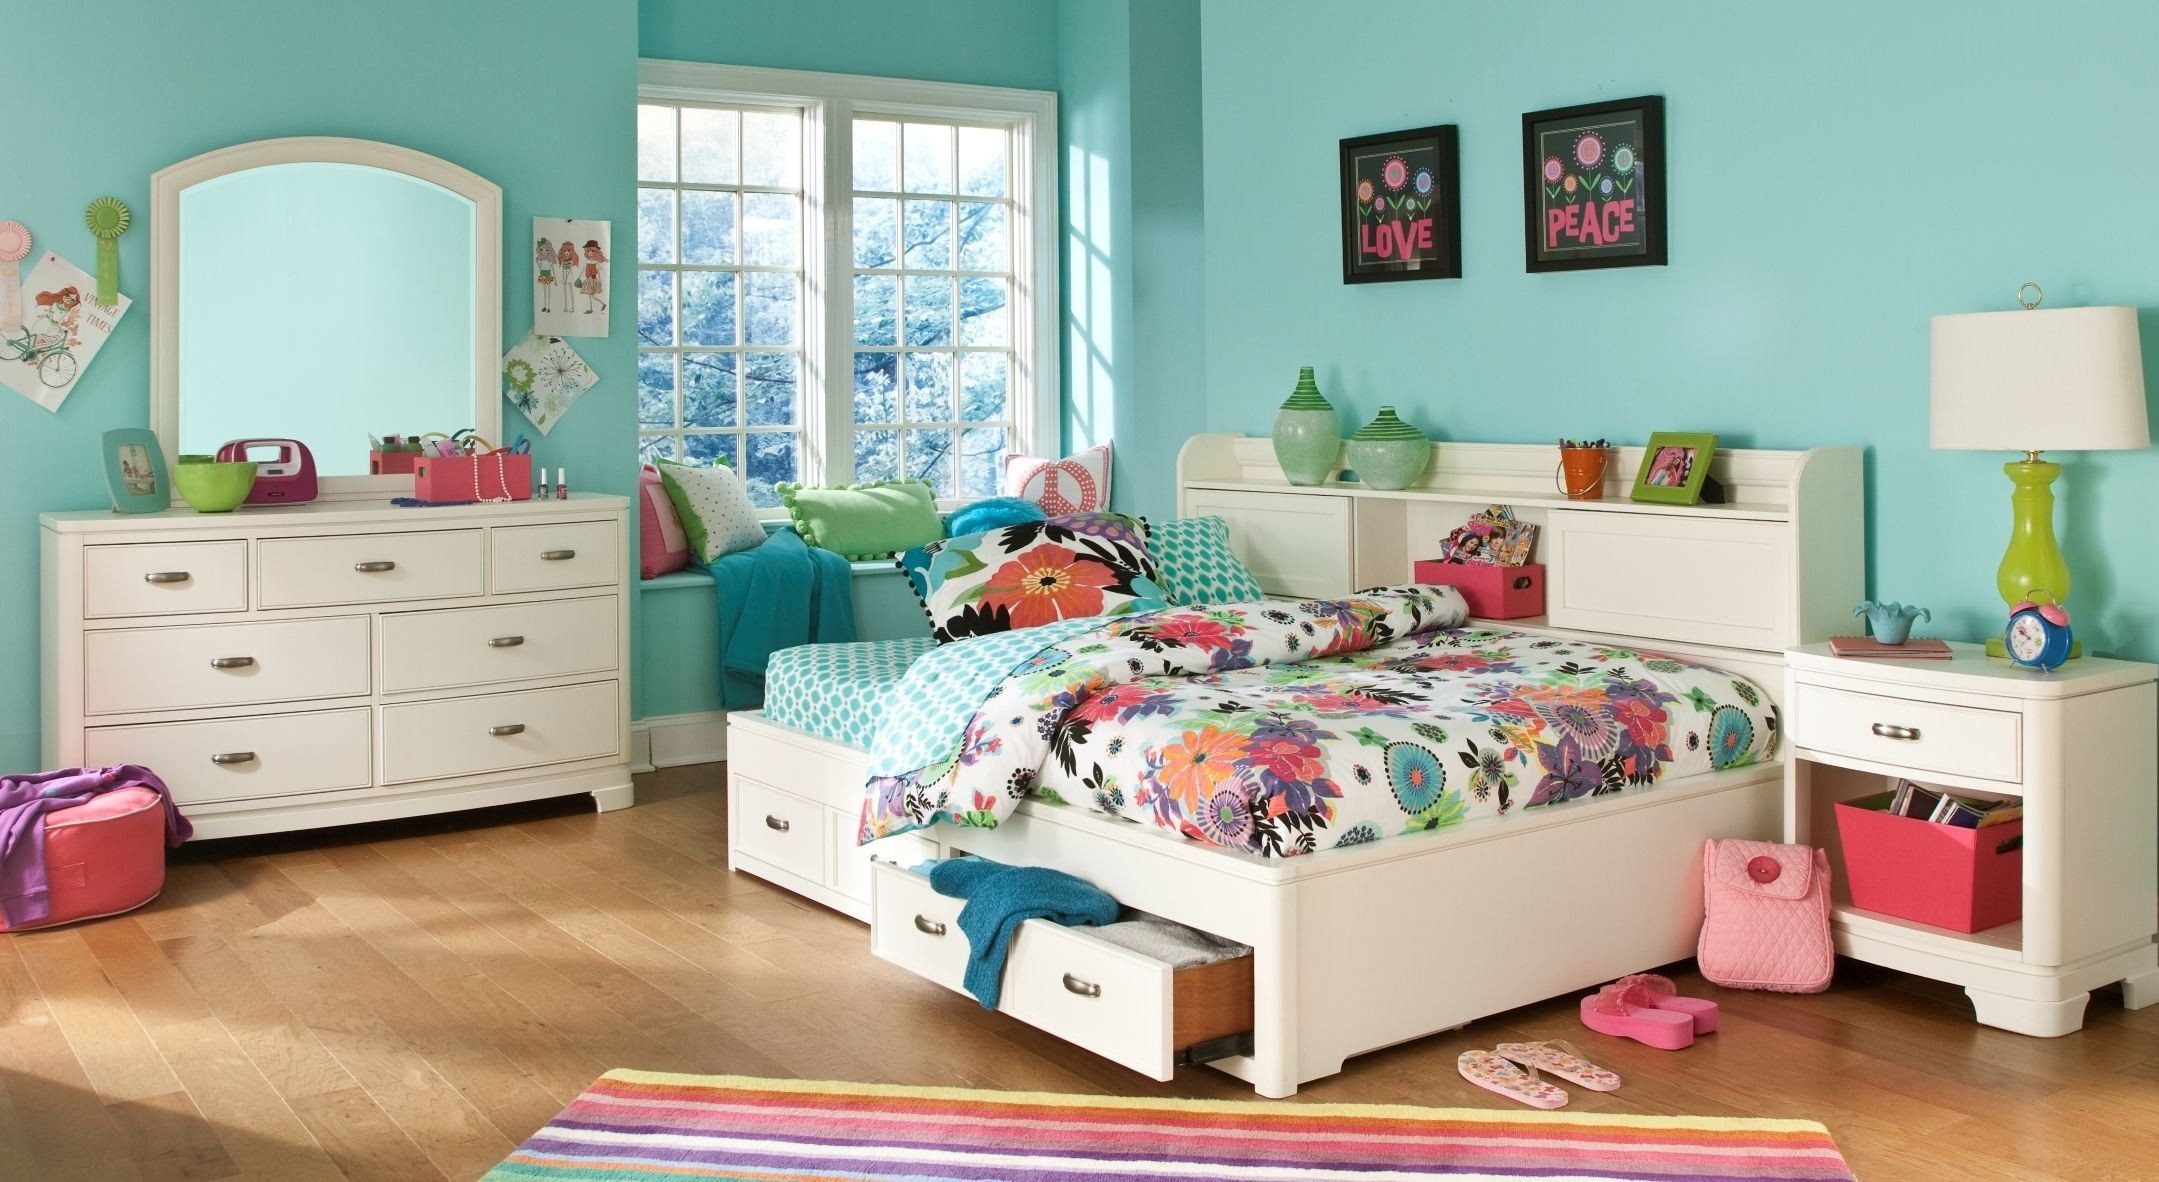 Park City White Bookcase Storage Lounge Bedroom Set From Legacy Kids 9910 5503k Coleman